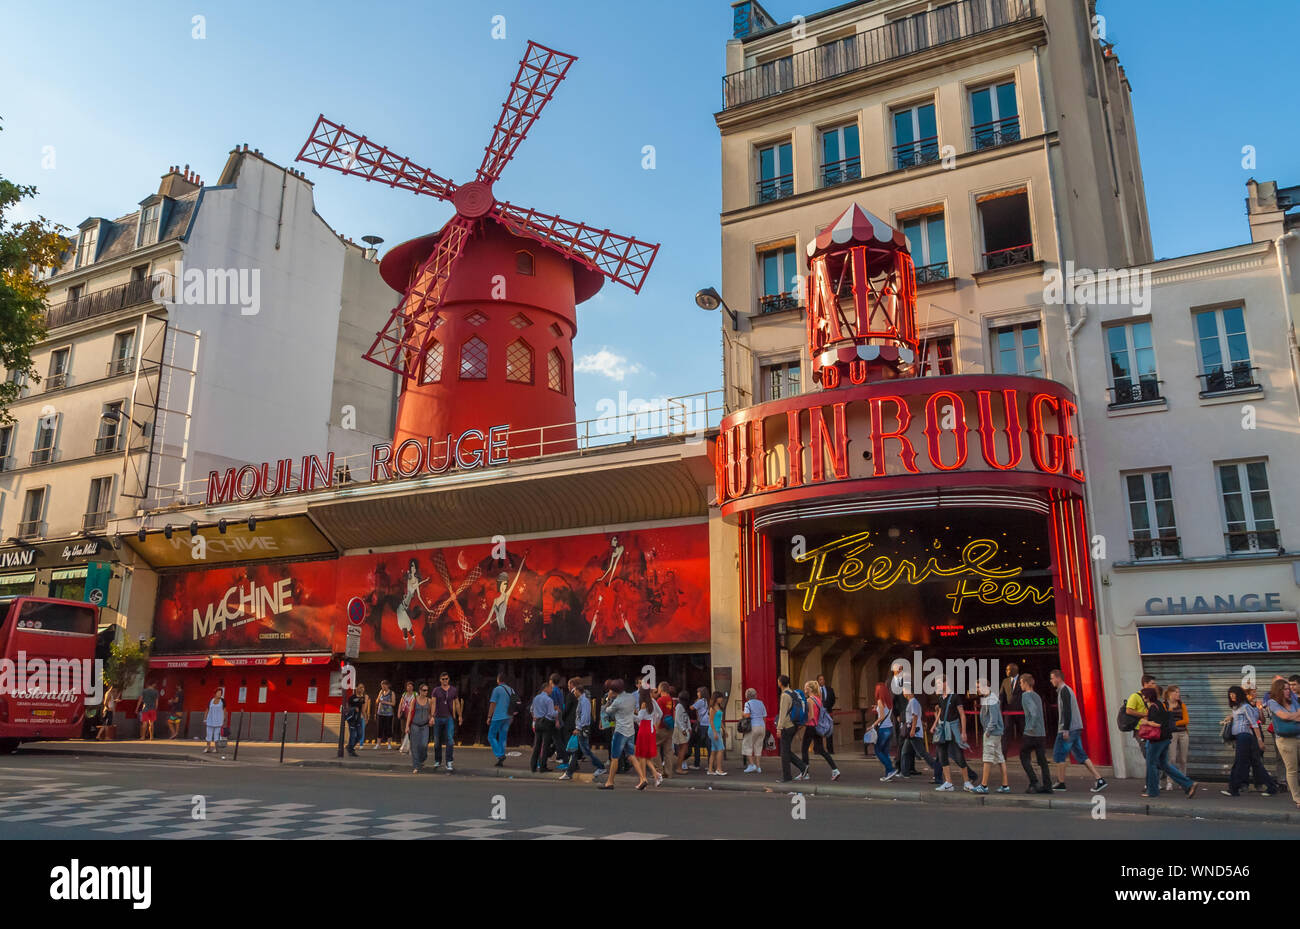 Lovely view of the Moulin Rouge building in the Paris district of Pigalle on Boulevard de Clichy in the 18th arrondissement, marked by a red windmill... Stock Photo